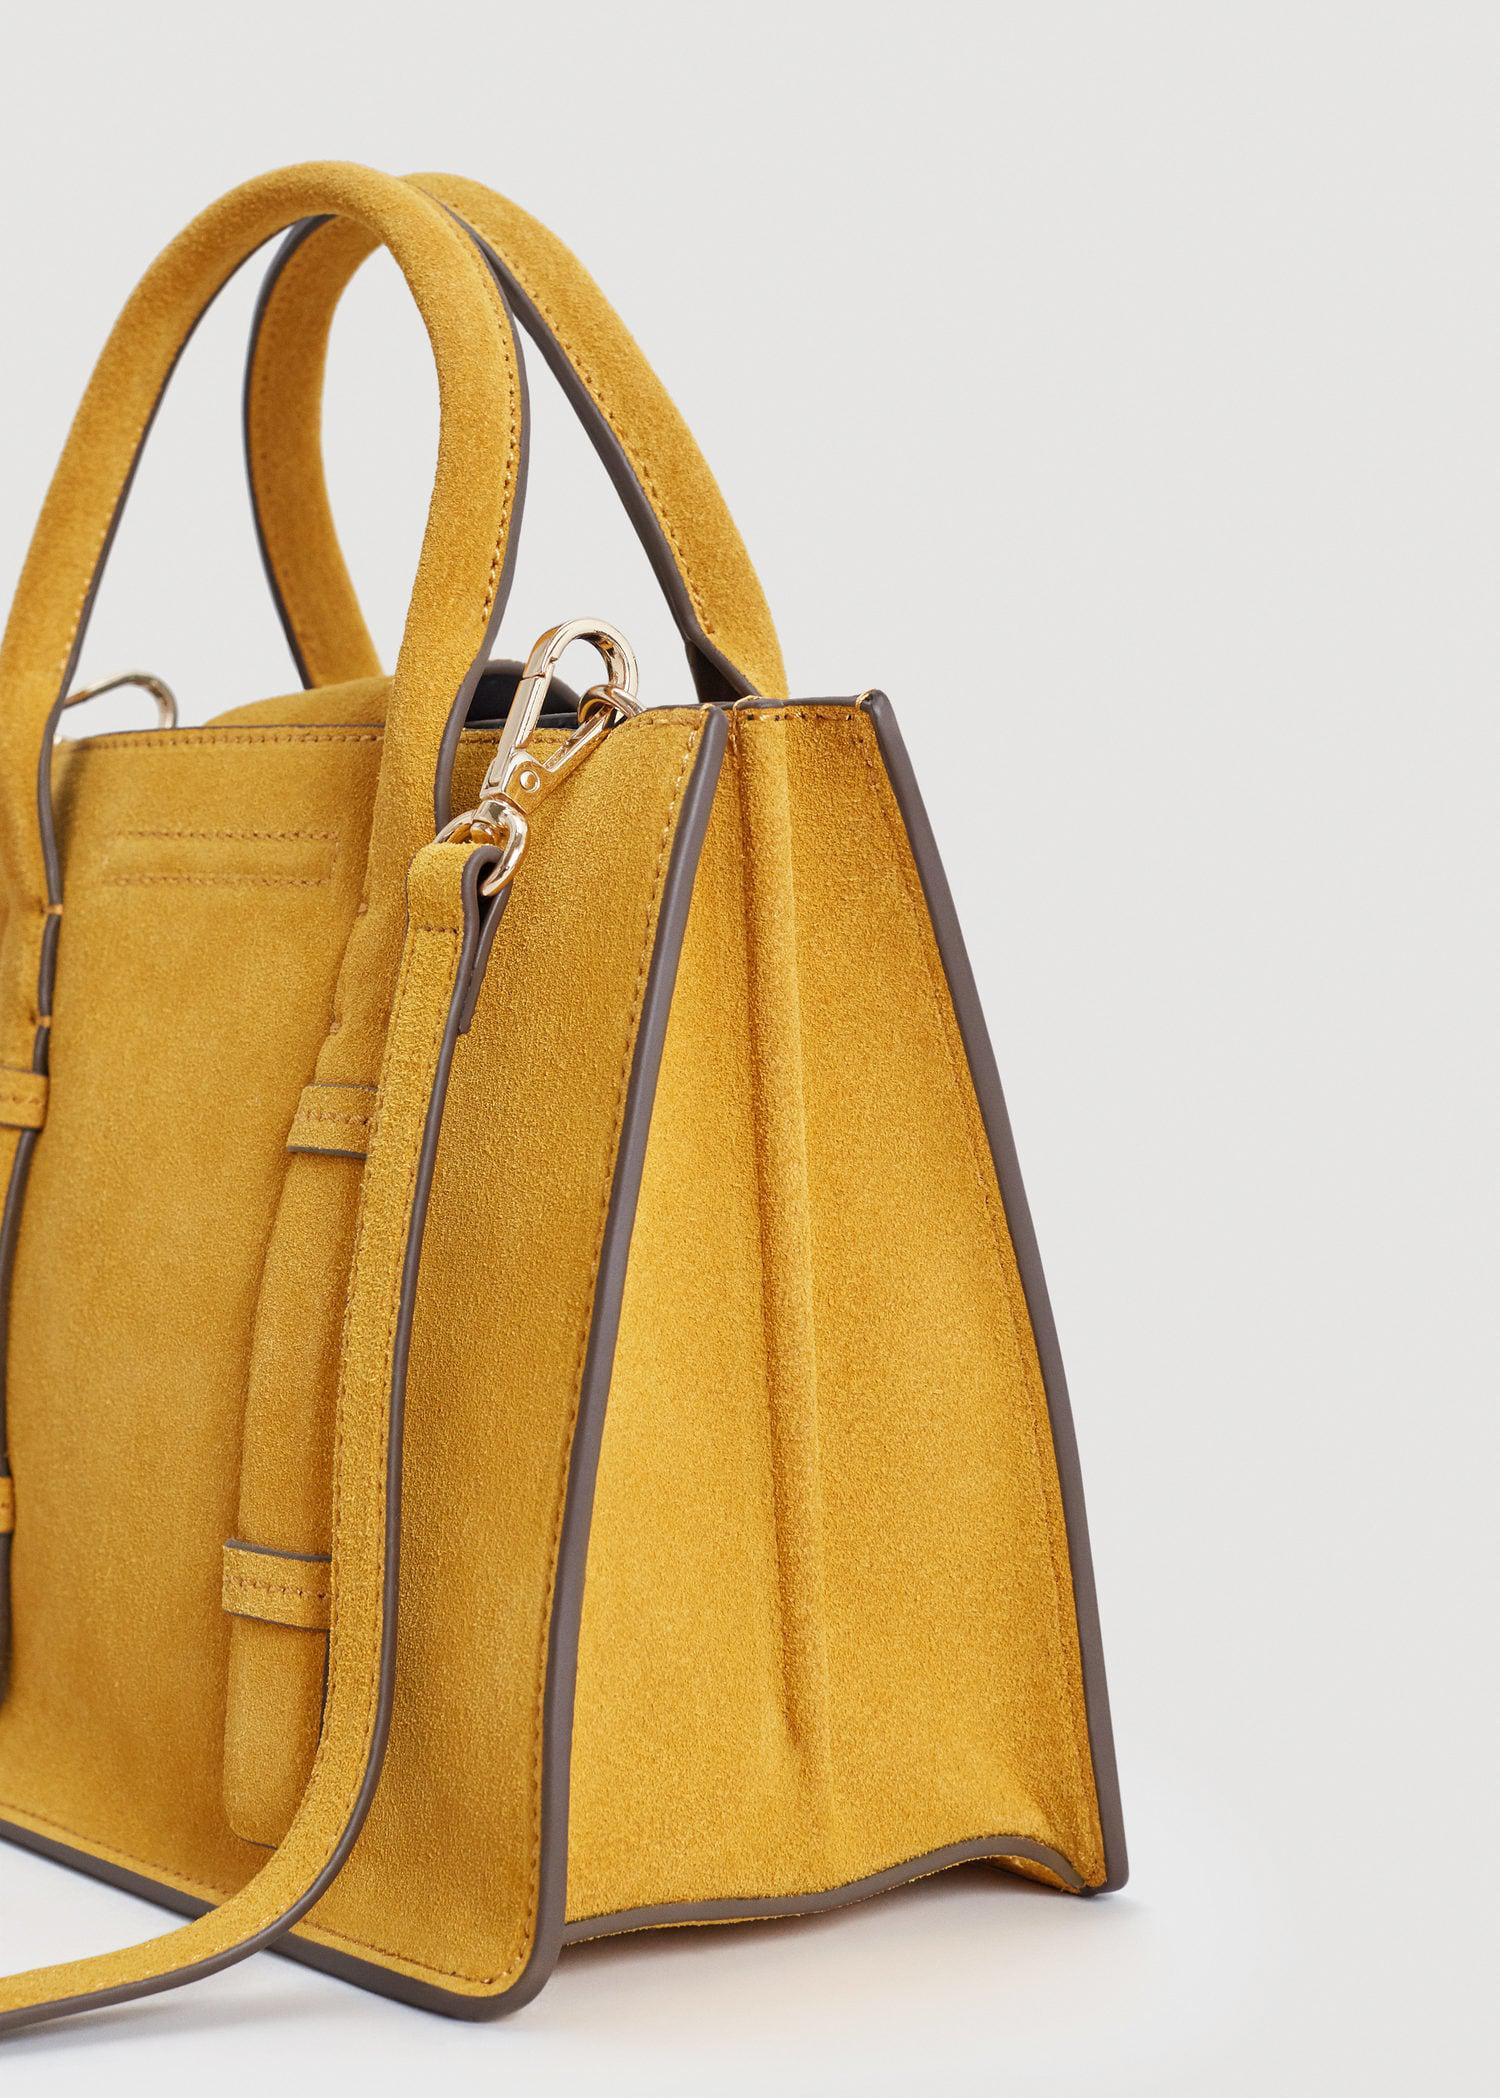 Lyst - Mango Double-strap Leather Bag in Yellow 9a948dc74